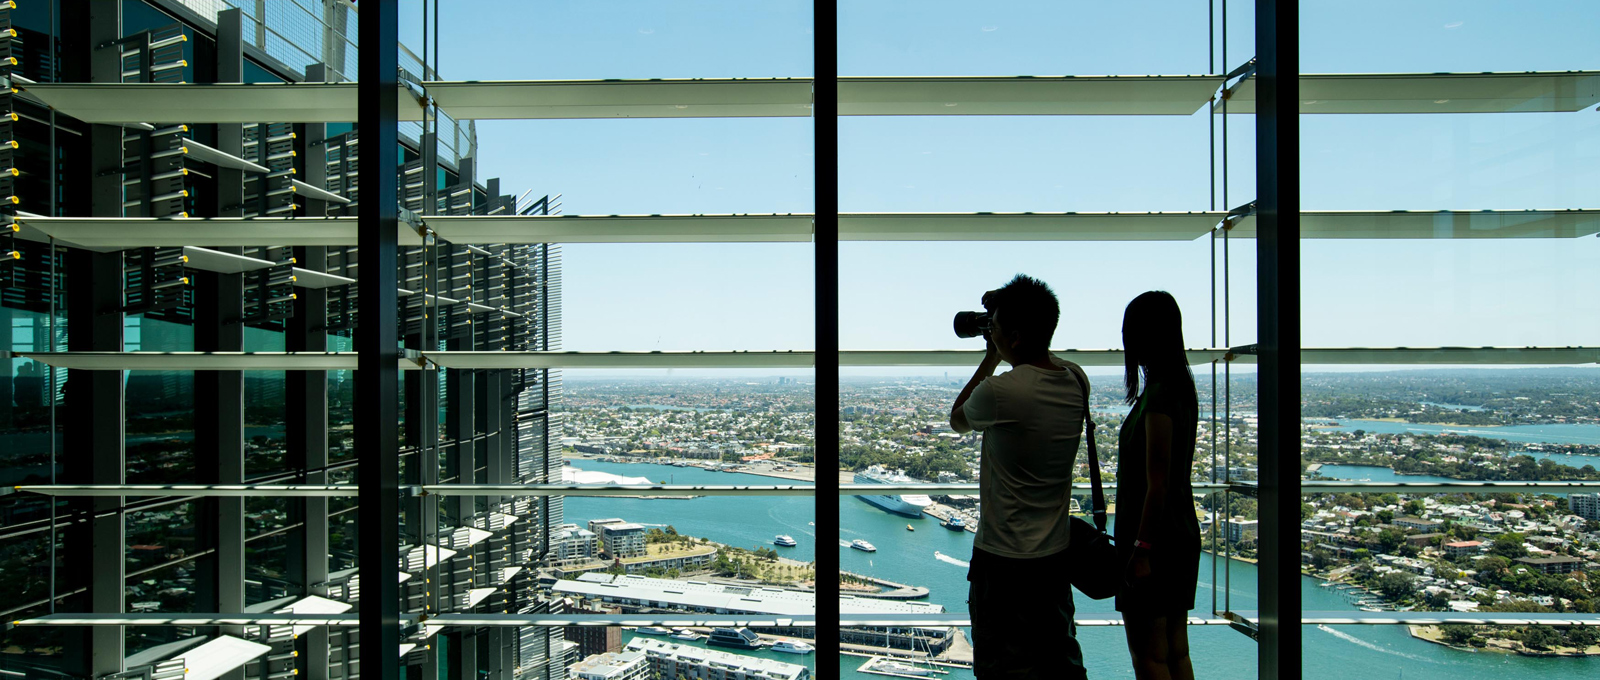 <p>Sydney Open 2016 visitors at Two International Towers, Barangaroo.&nbsp;Photo &copy; James Horan for Sydney Living Museums</p>